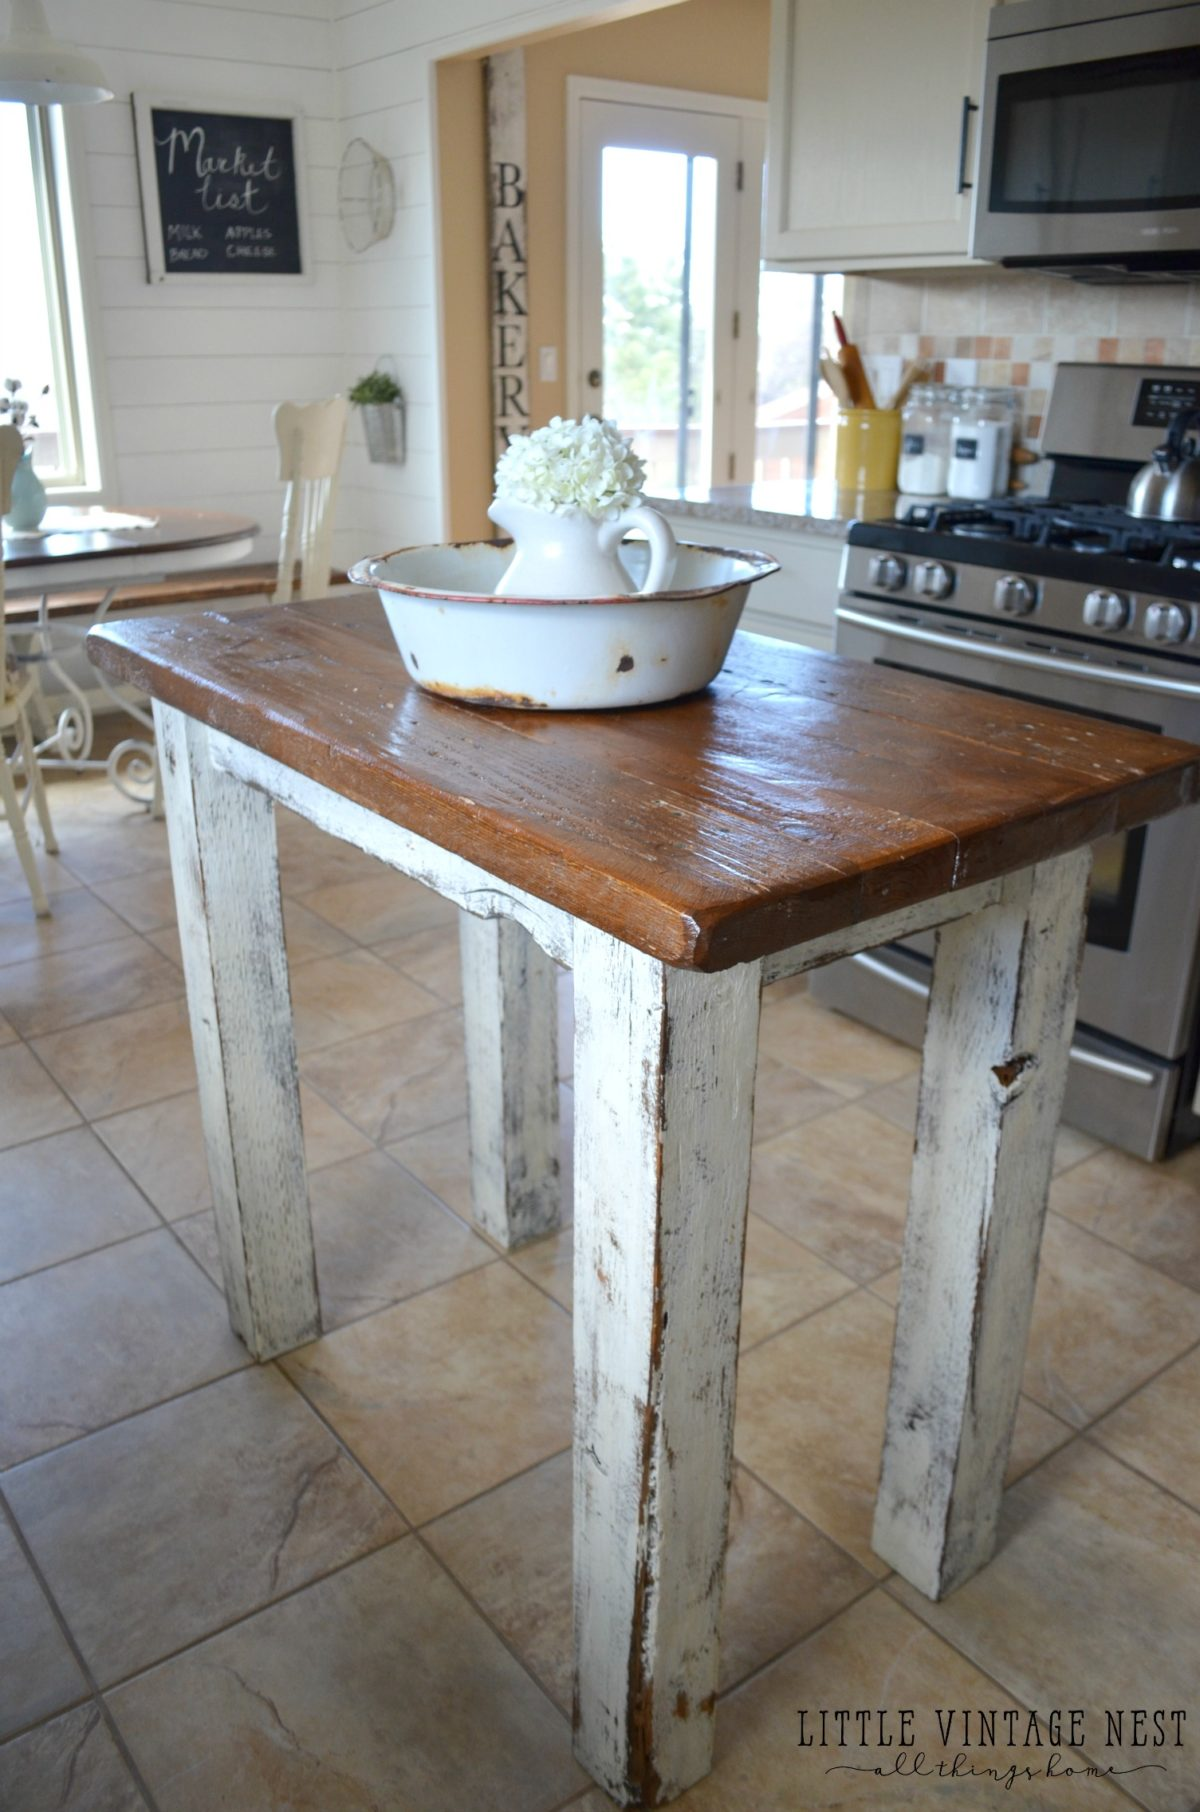 farm style kitchen island. rustic farmhouse style kitchen island made from reclaimed barn wood. farm b